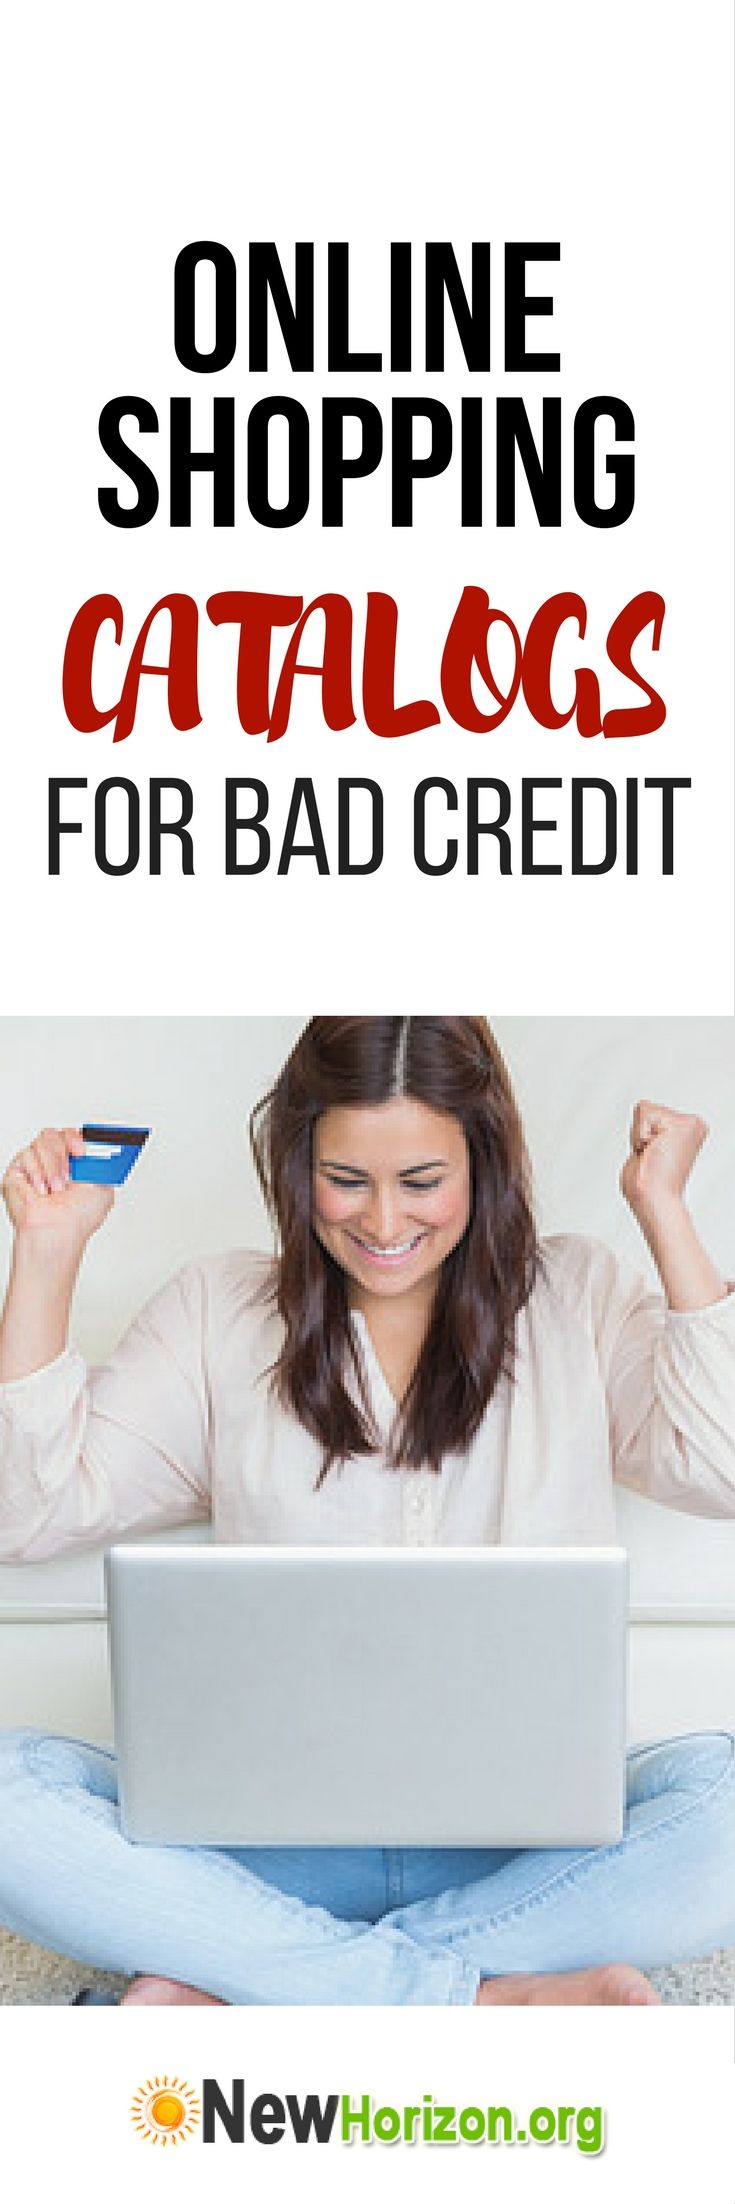 Merchandise Cards Catalog Credit Cards Bad Credit American Express Credit Card Bad Credit Credit Cards